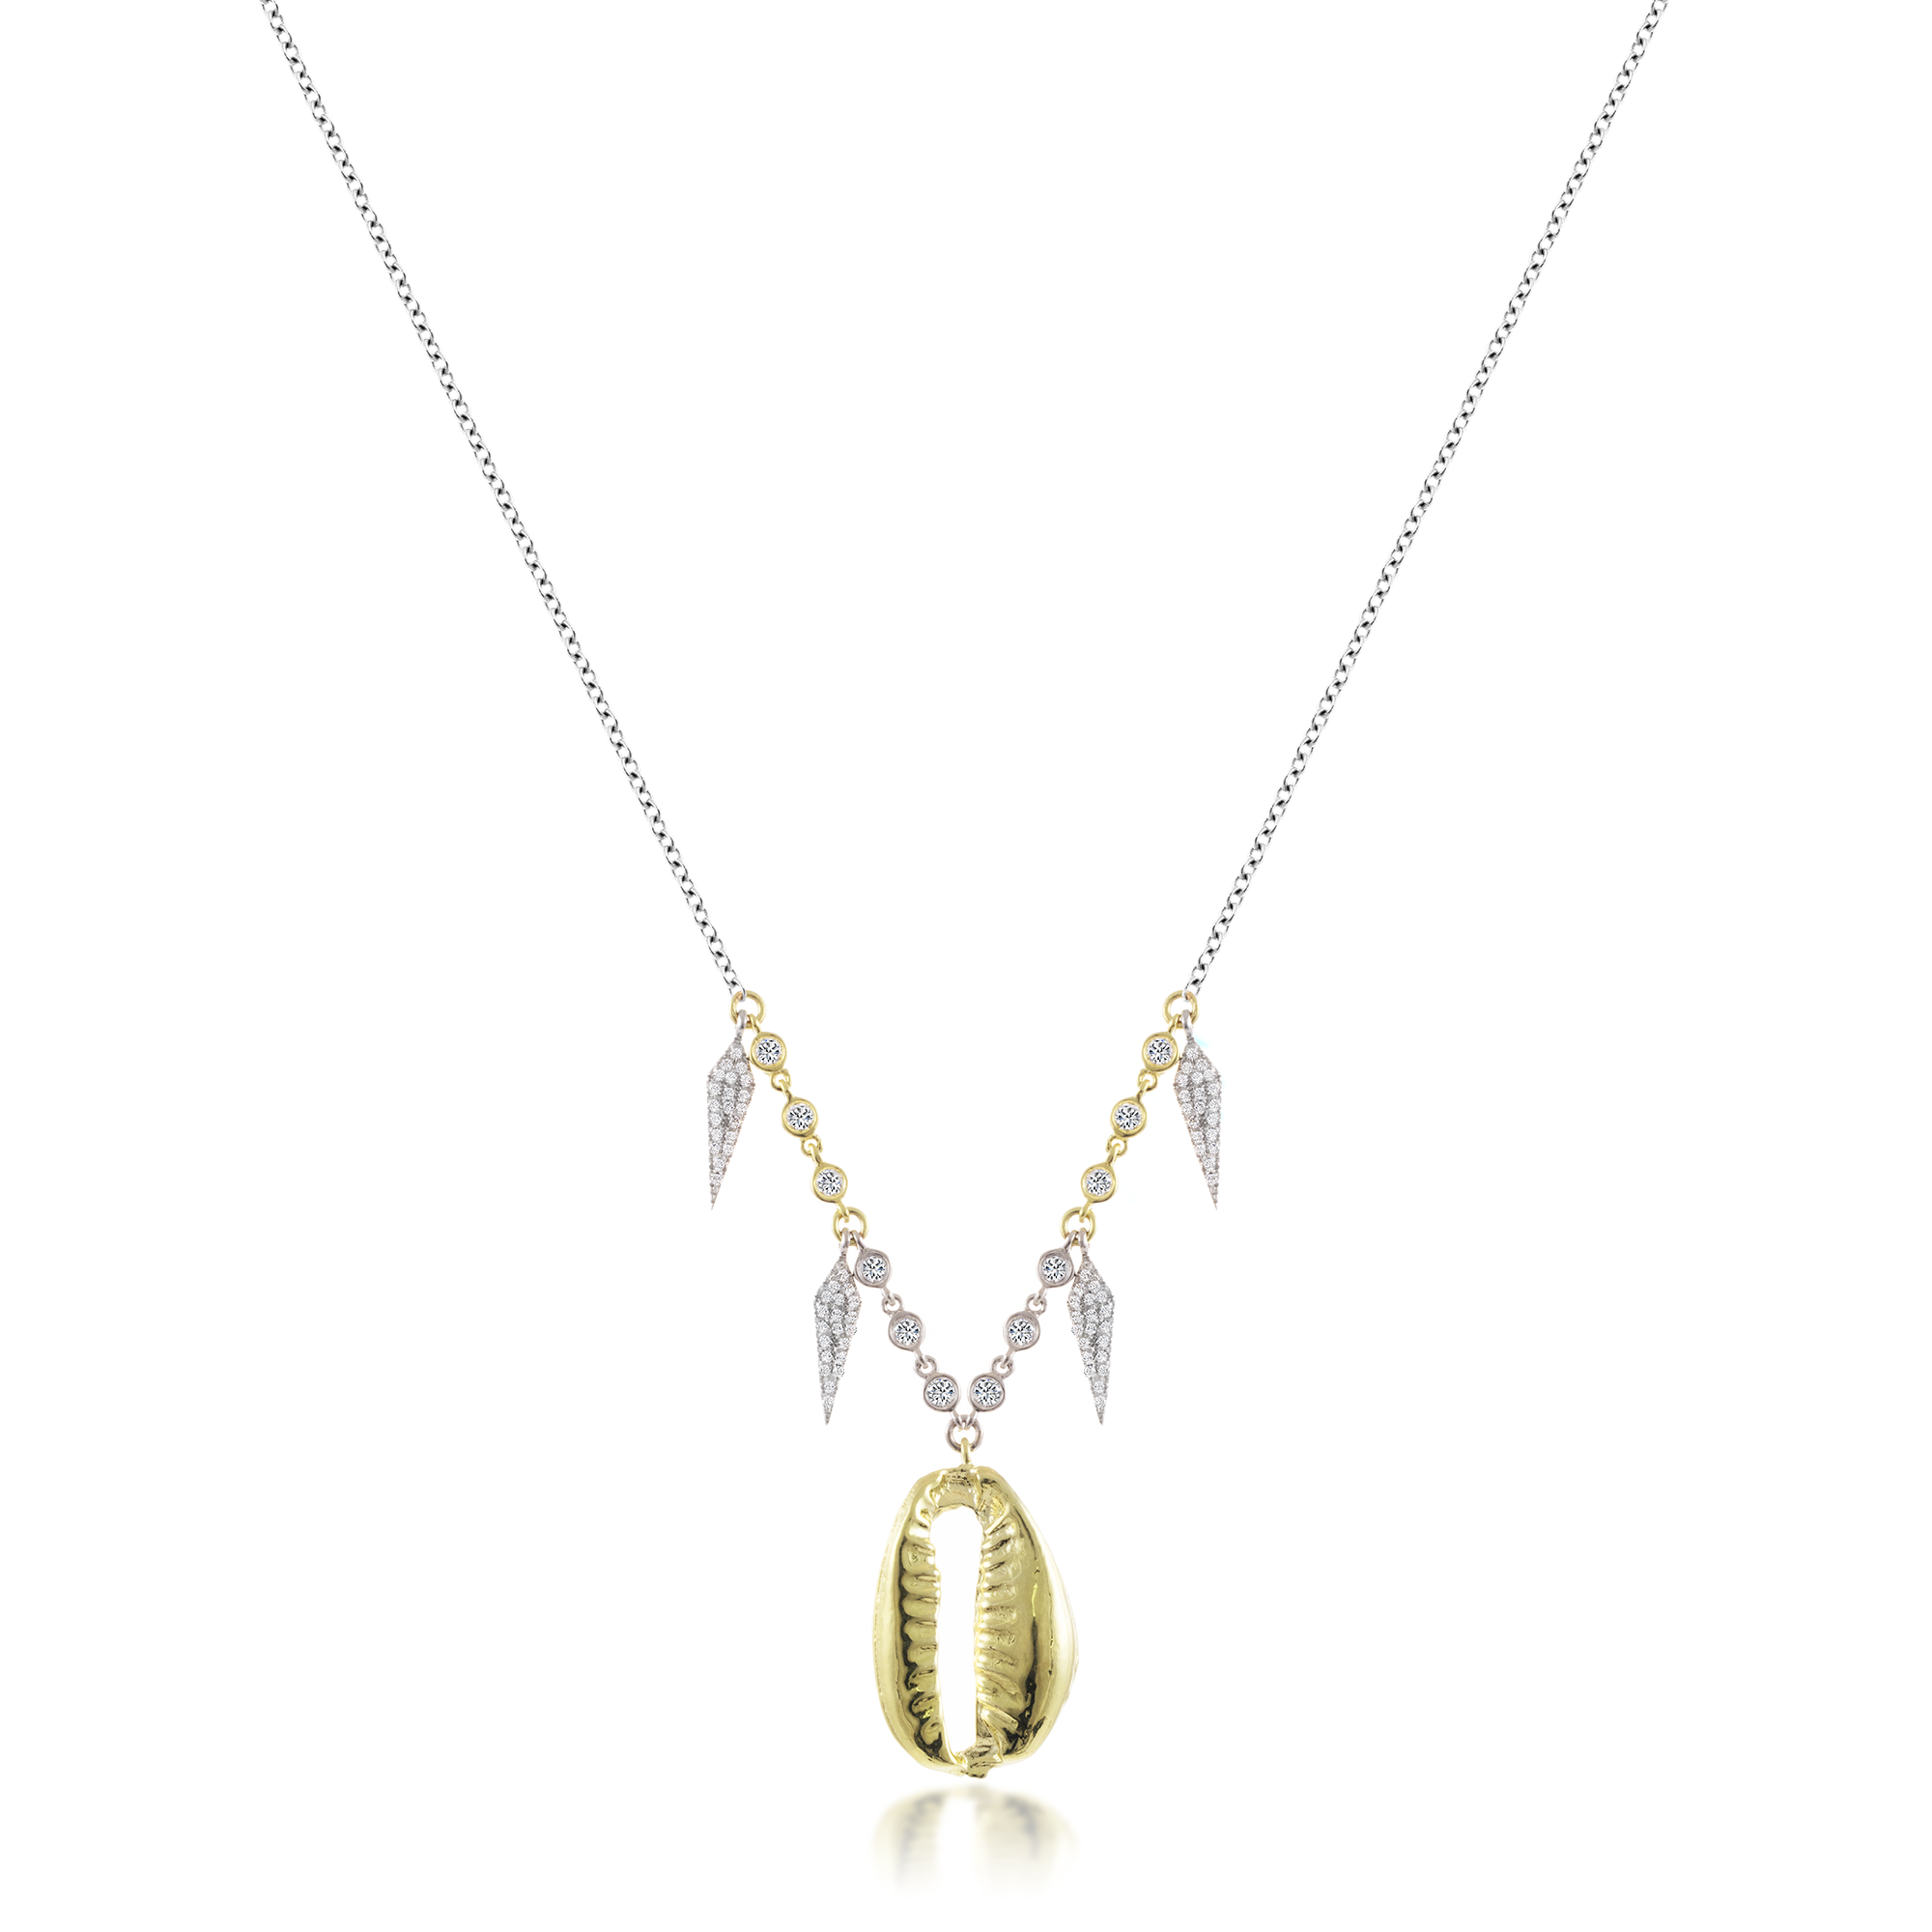 Yellow Gold Shell Necklace with Diamond Charms